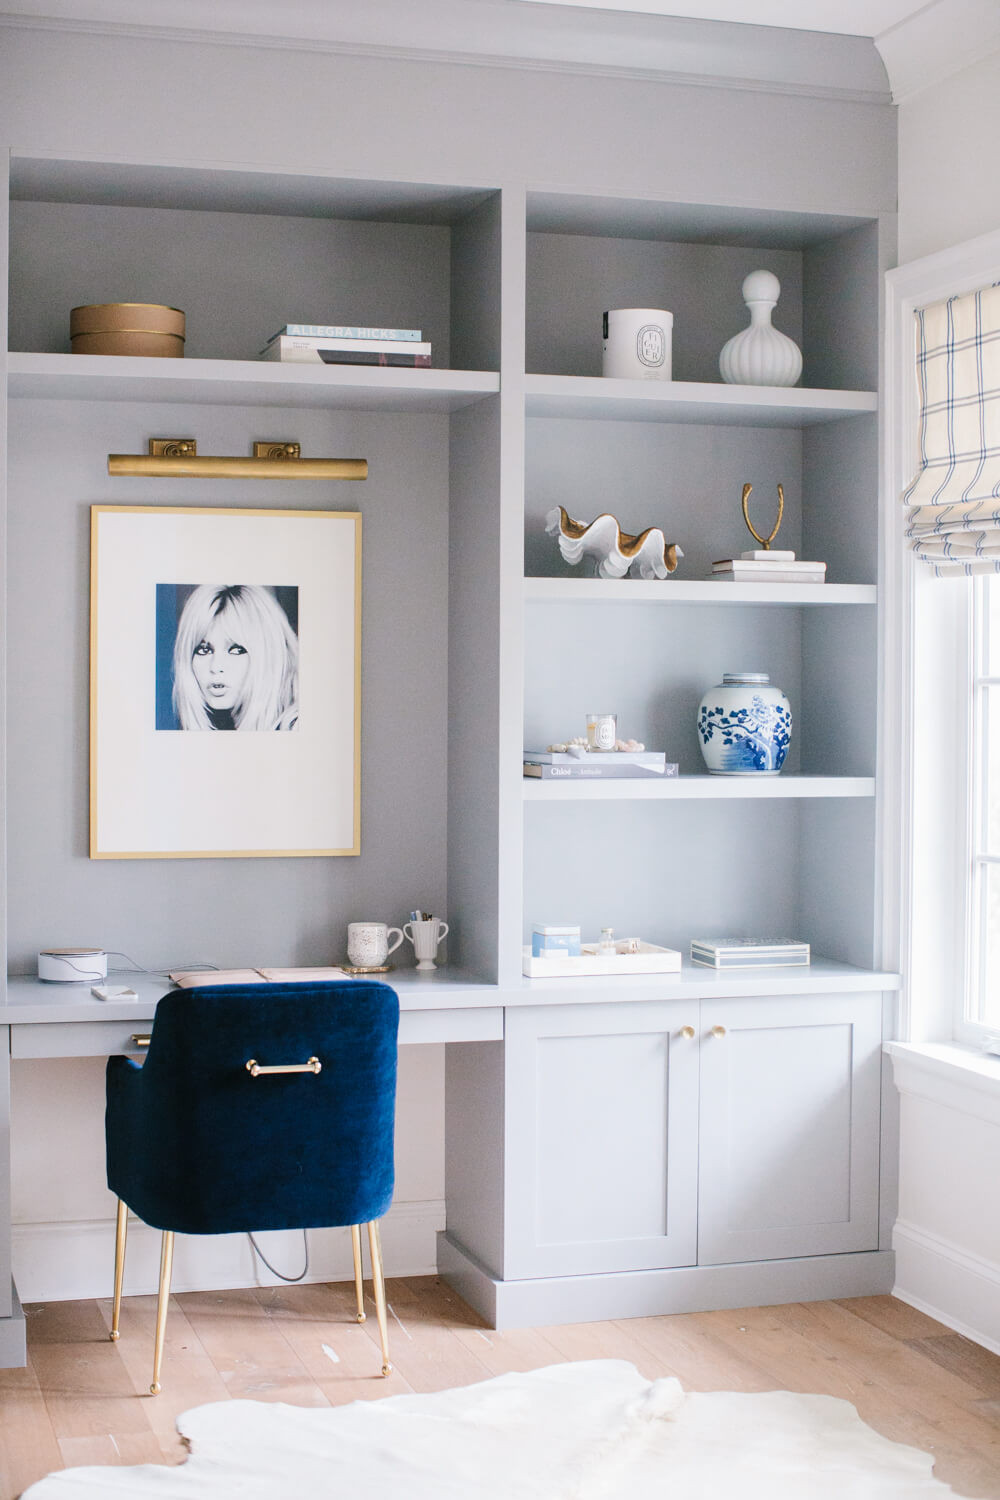 Grey custom built-in desk surrounded by stylish open shelving with vases, books and other decorative objects. Shaker cabinets at the bottom with brass hardware. The desk chair is a deep blue velvet with the added touch of a brass handle on the back to match its brass mid-century legs. On the grey wall in front of the desk is a pop art portrait of a skinny blonde lady likely from the 1960s with a brass library lamp mounted above to showcase the art work. On the adjacent window is a white and grey modern plaid patterned window shade. On the floor is a light oak timber layered with a white animal hide rug.